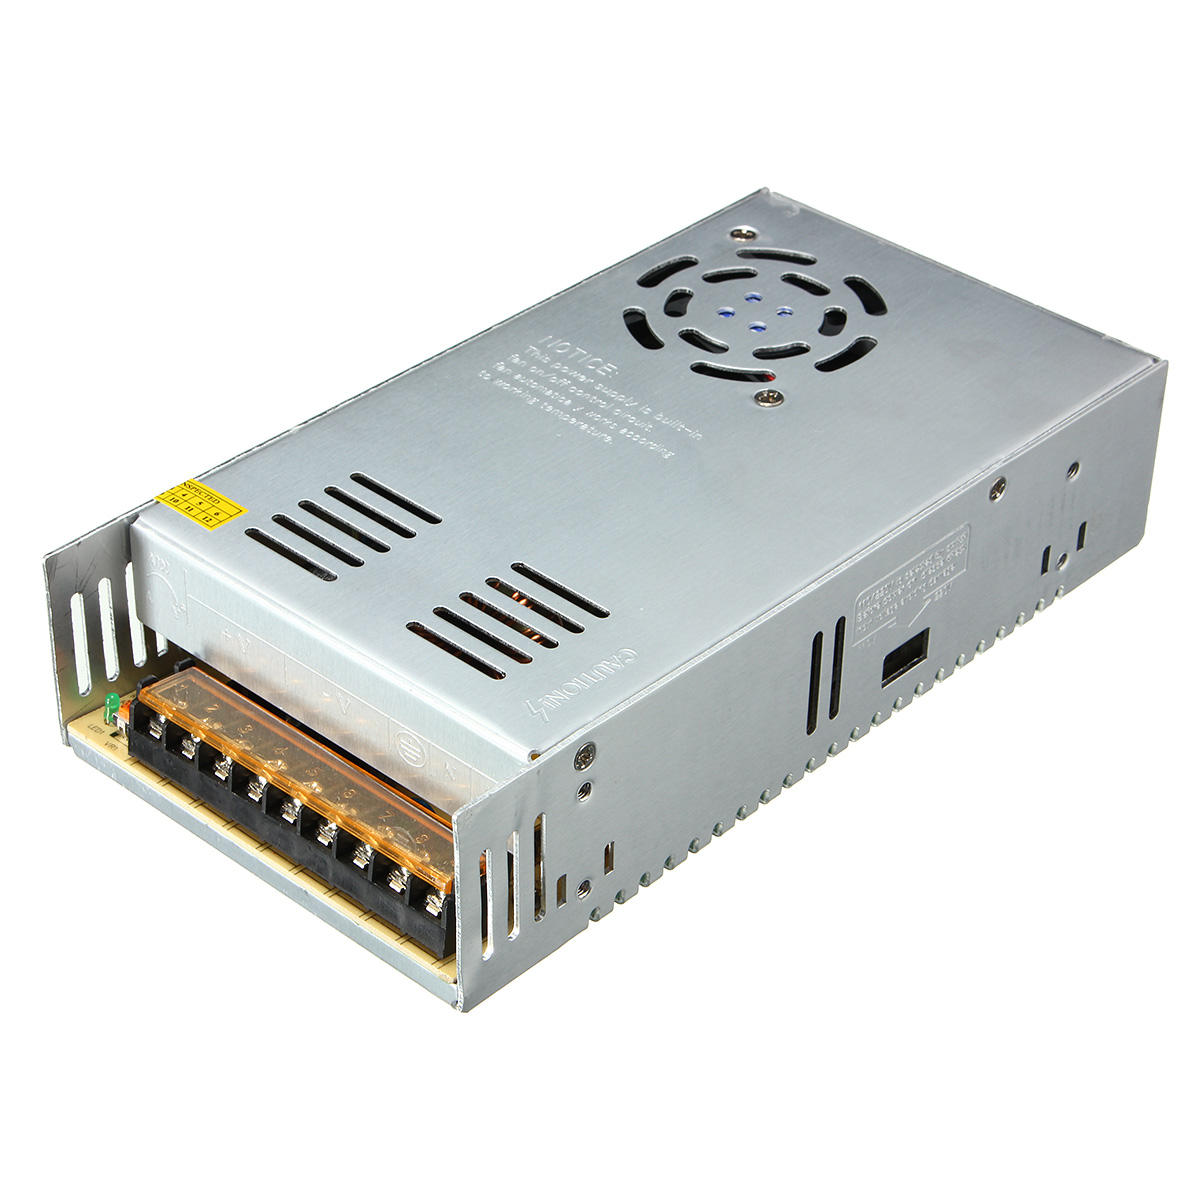 AC 110-220V to DC 27V 15A 400W Switching Power Supply SMPS Transformer for LED Strip Light